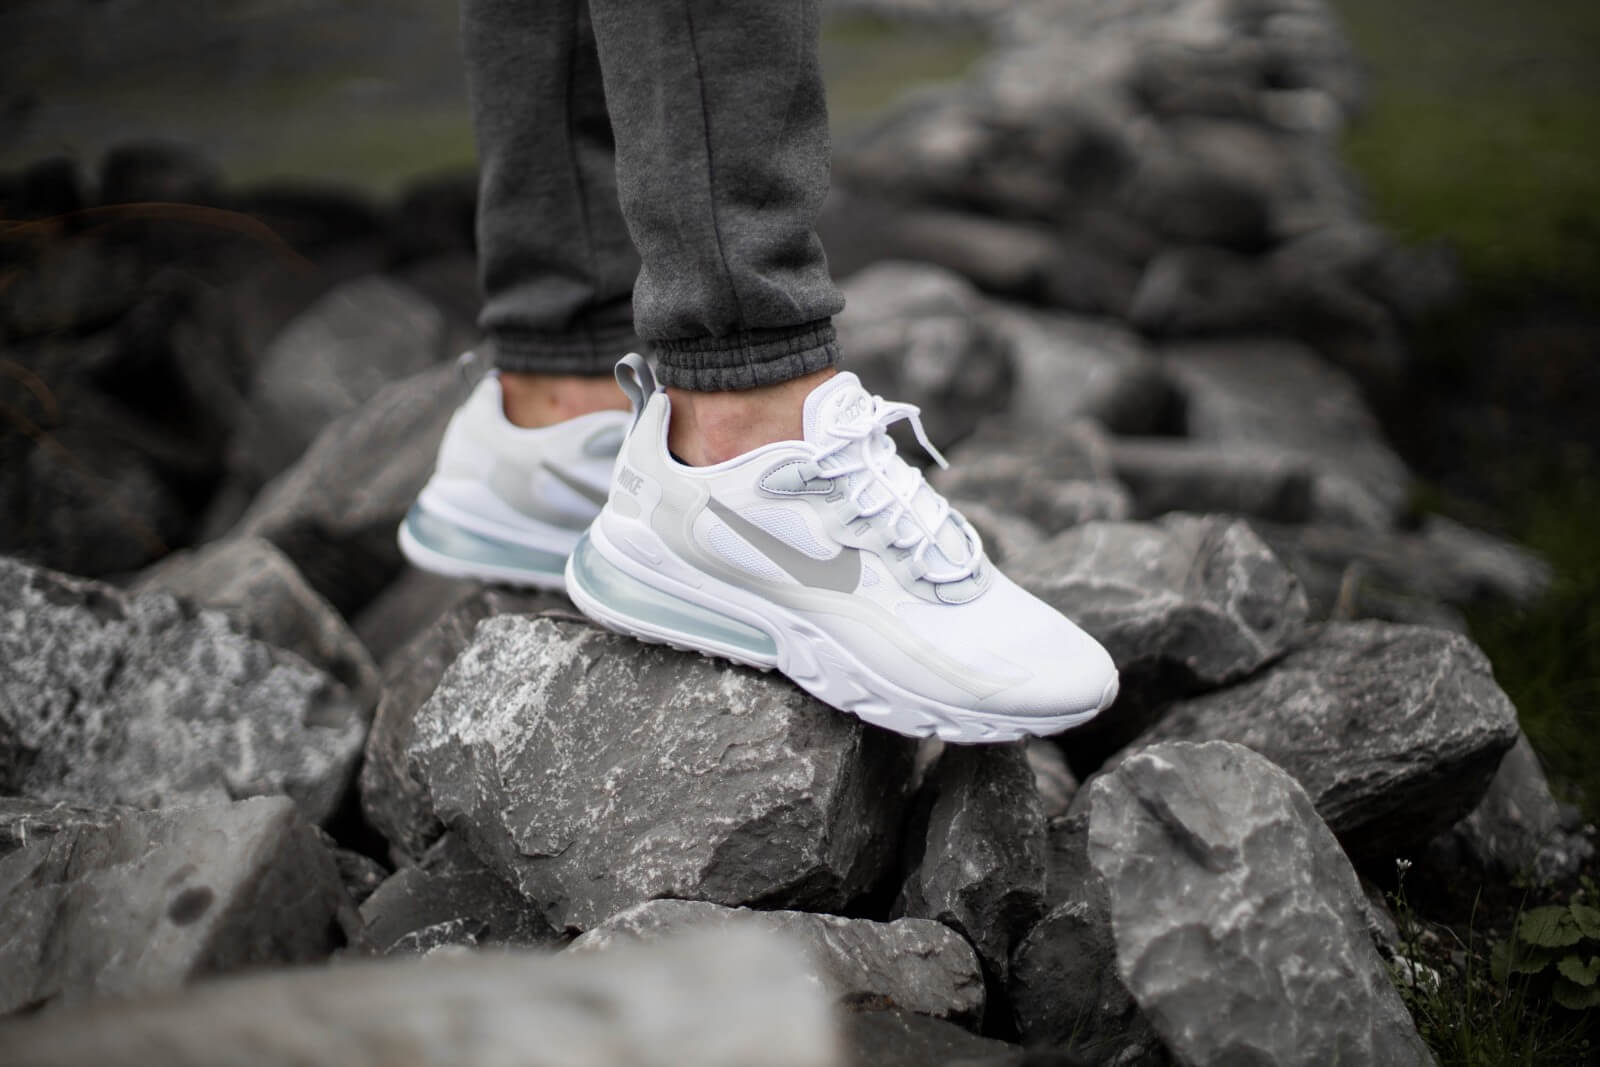 Nike Air Max 270 React White/Light Smoke Grey-Pure Platinum